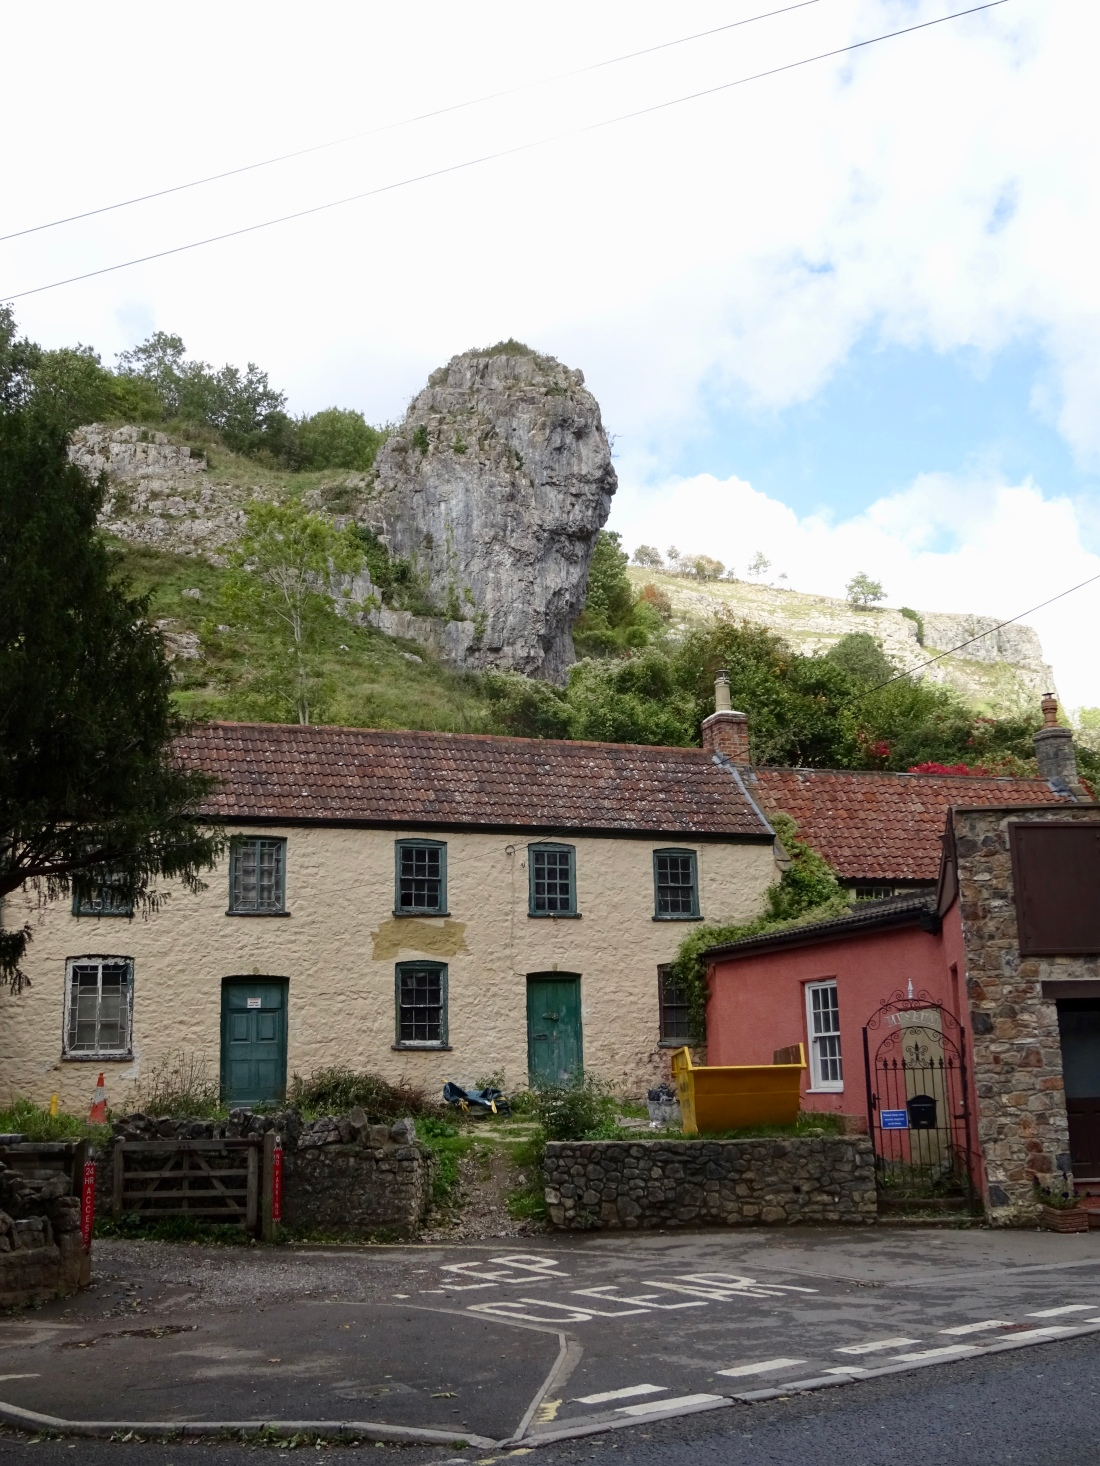 Lion Rock, Cheddar Gorge, Somerset, England.